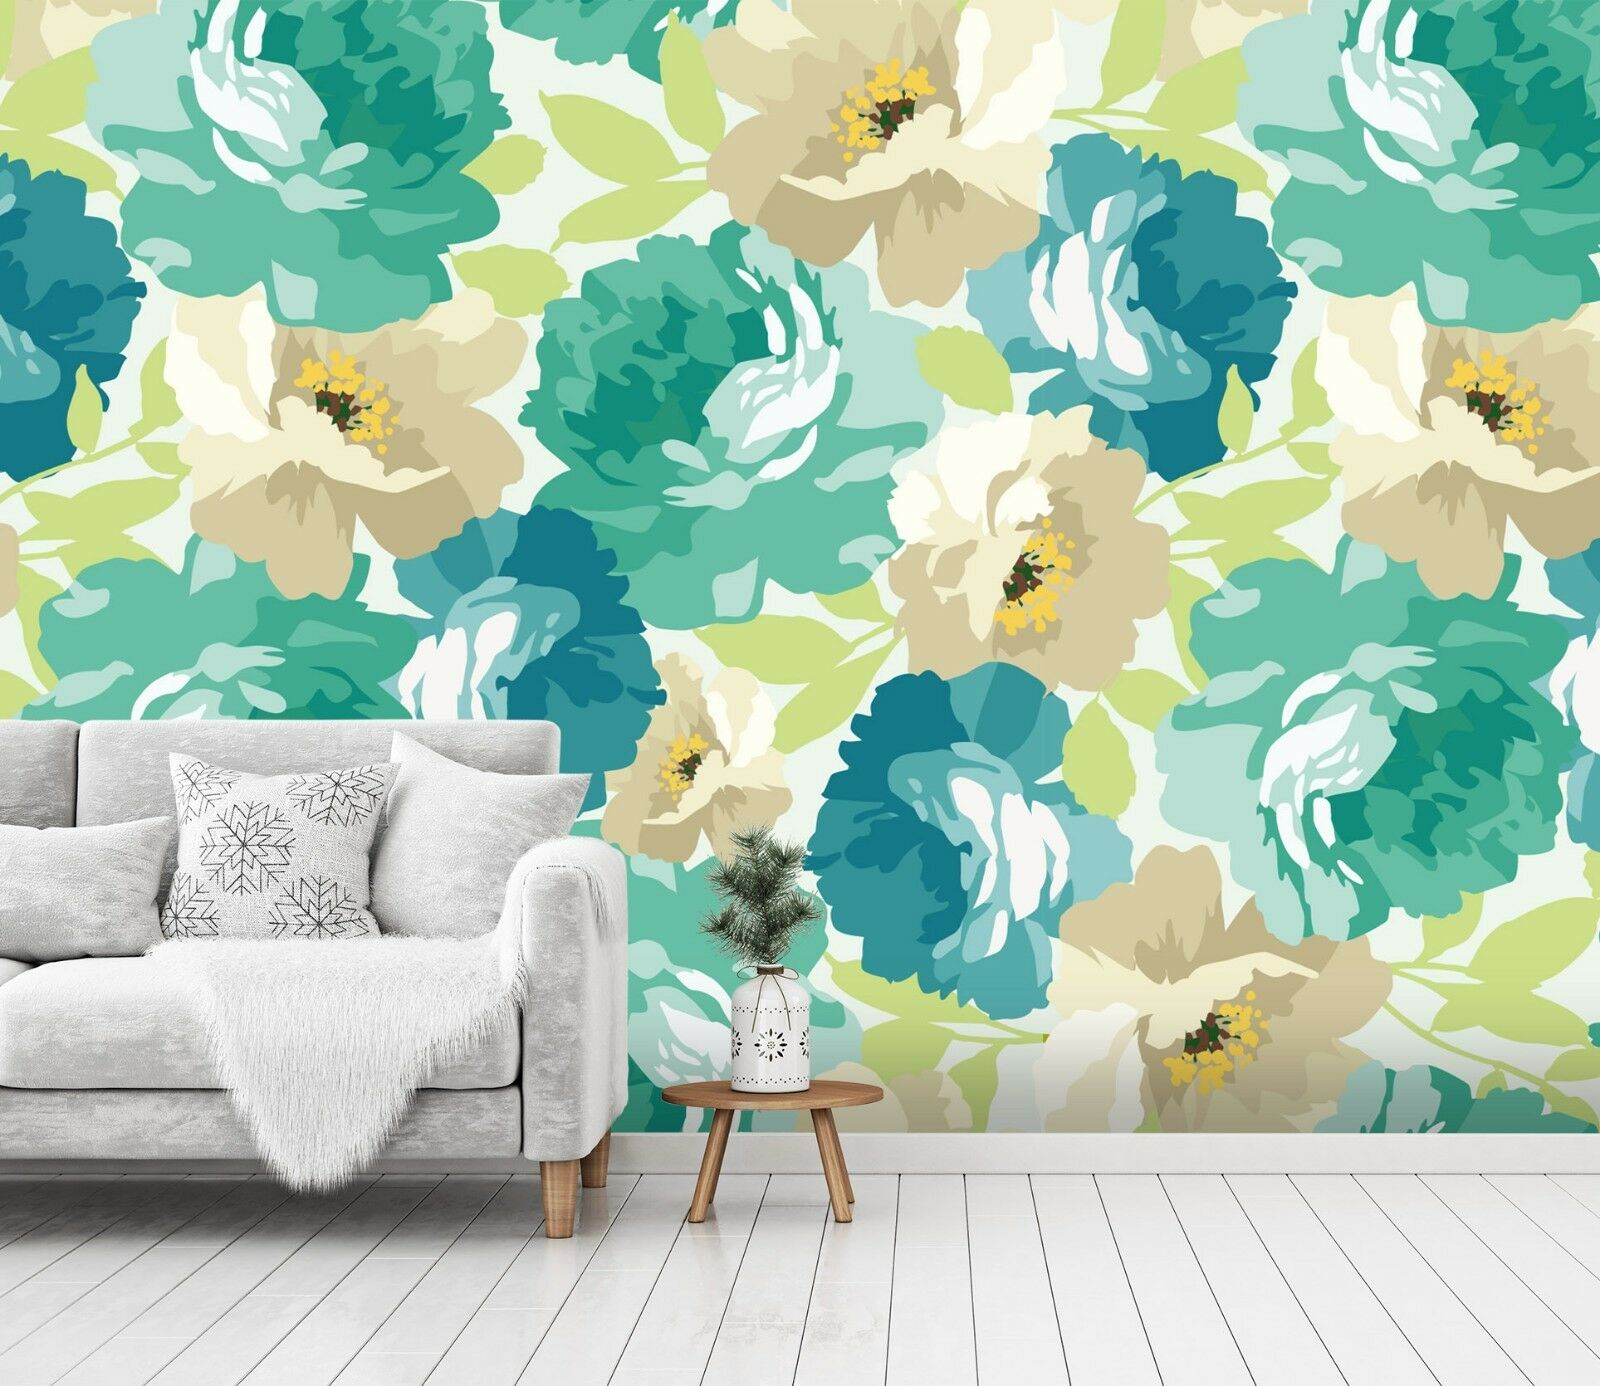 3D Nature Grün 7016 Wall Paper Print Wall Decal Deco Indoor Wall Murals US